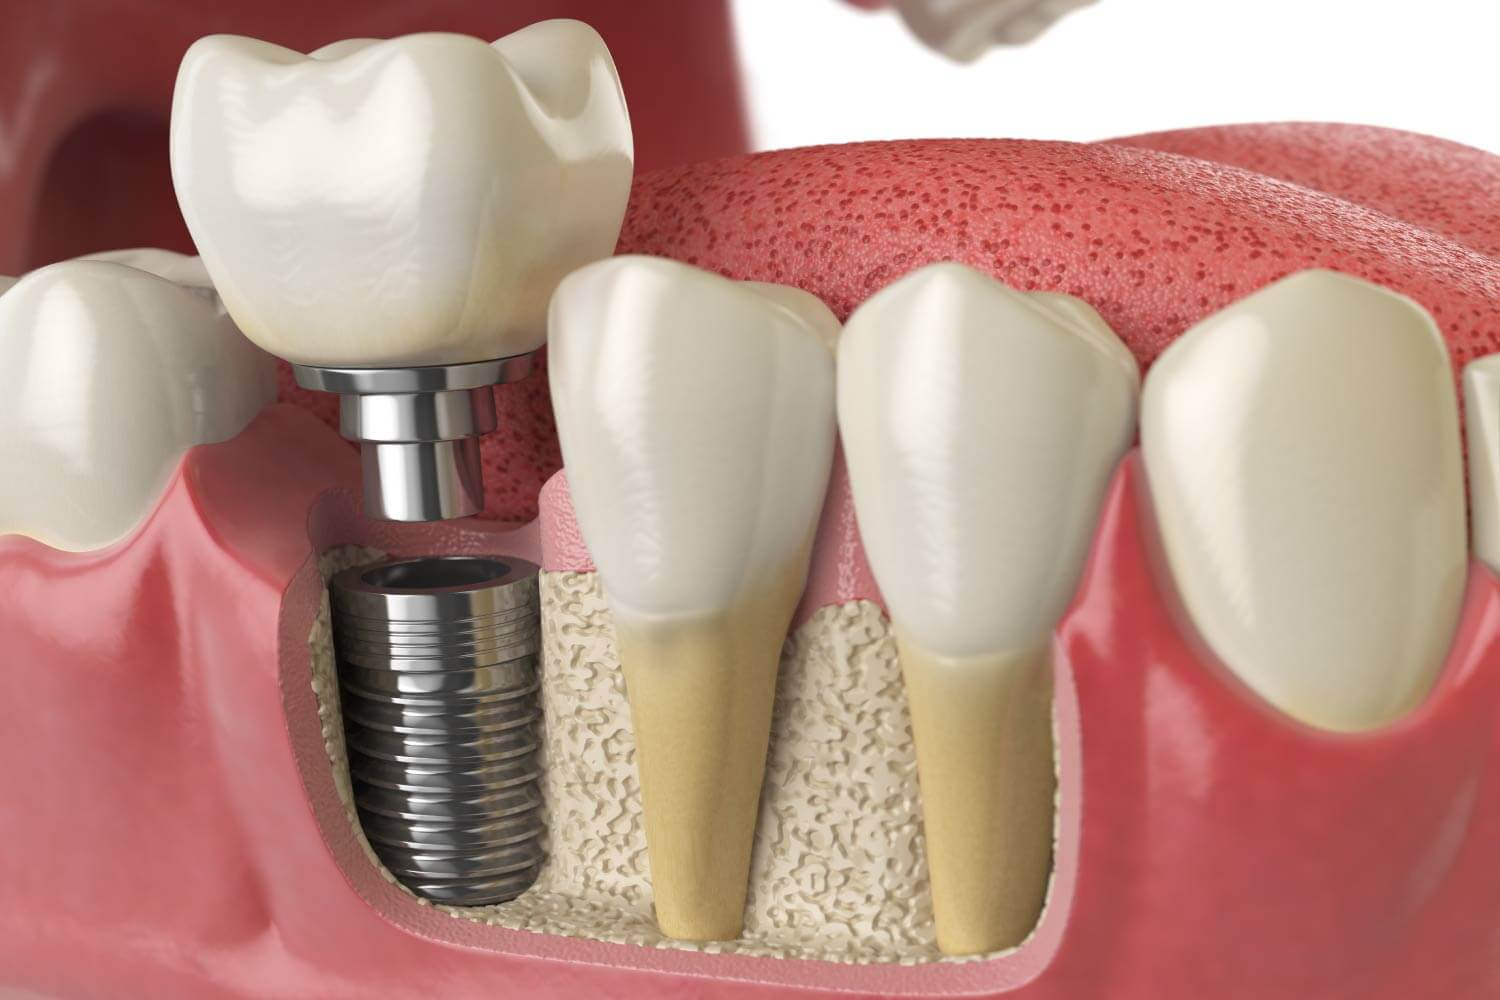 Dental implant model next to teeth with natural roots in Katy, TX